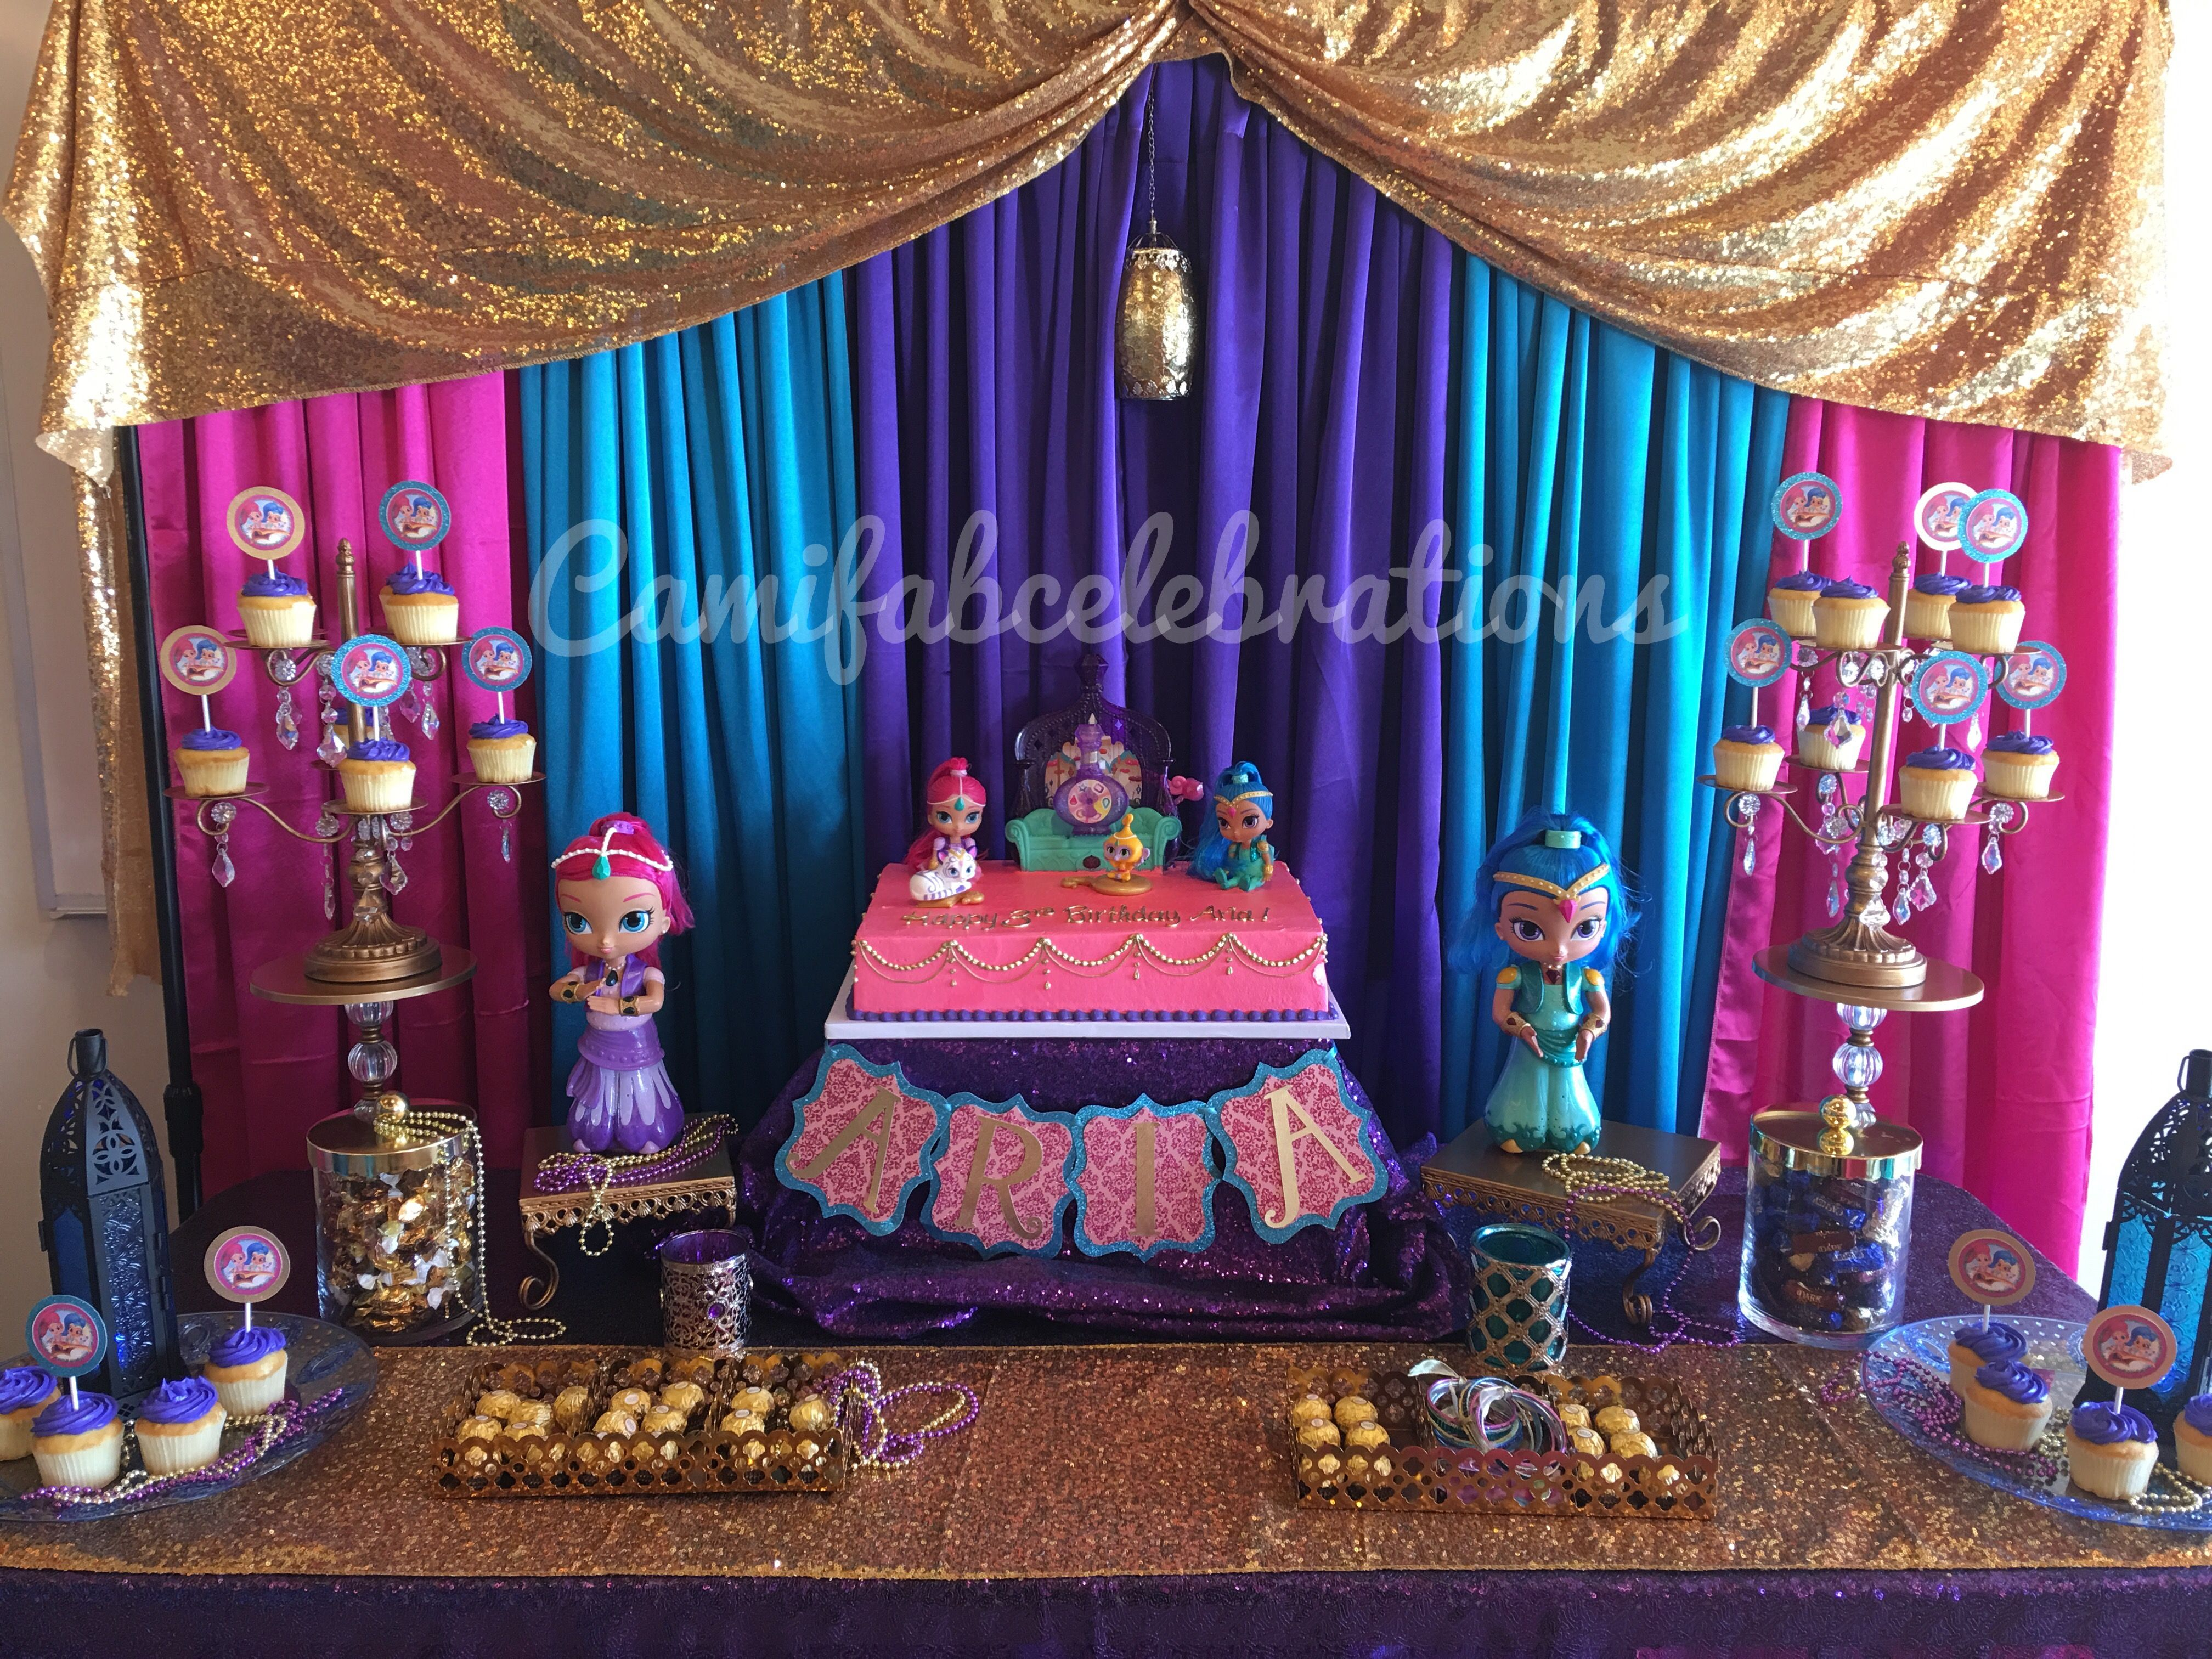 Shimmer and Shine Birthday Party | Crafts & party ideas ...